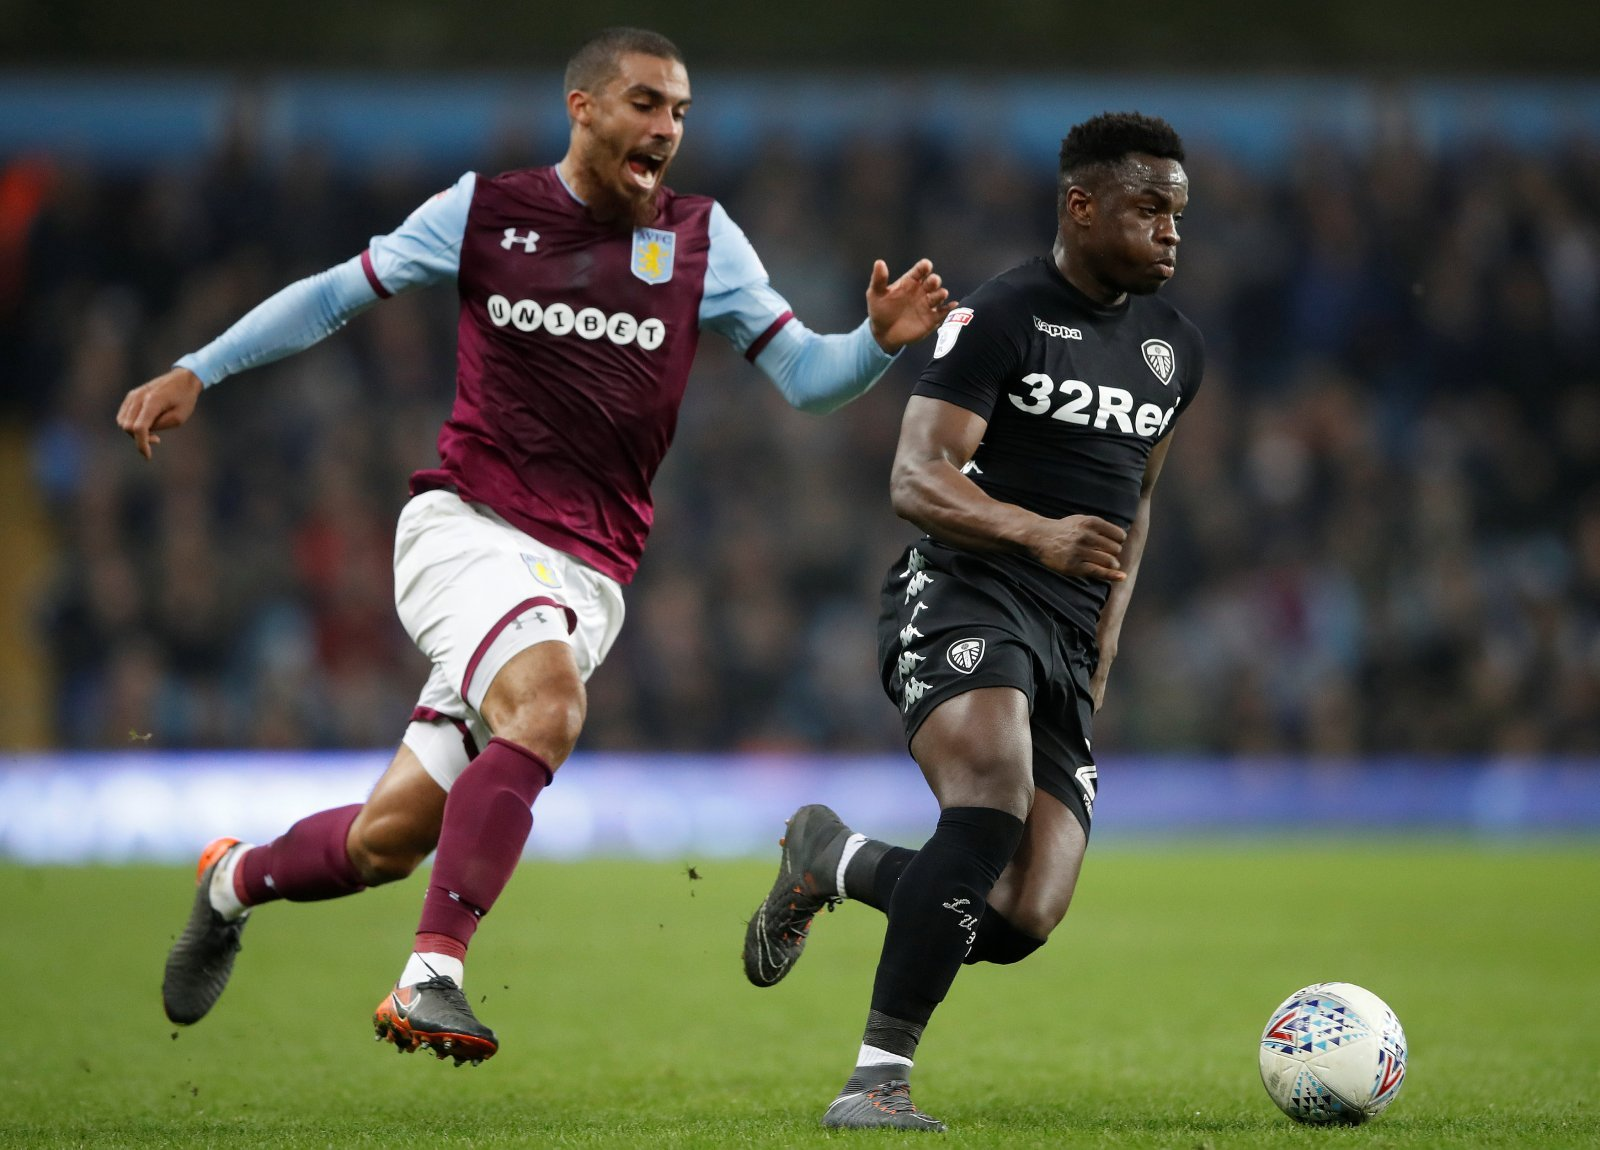 Opinion: Leeds should re-sign Ronaldo Vieira on loan to replace Lewis Baker